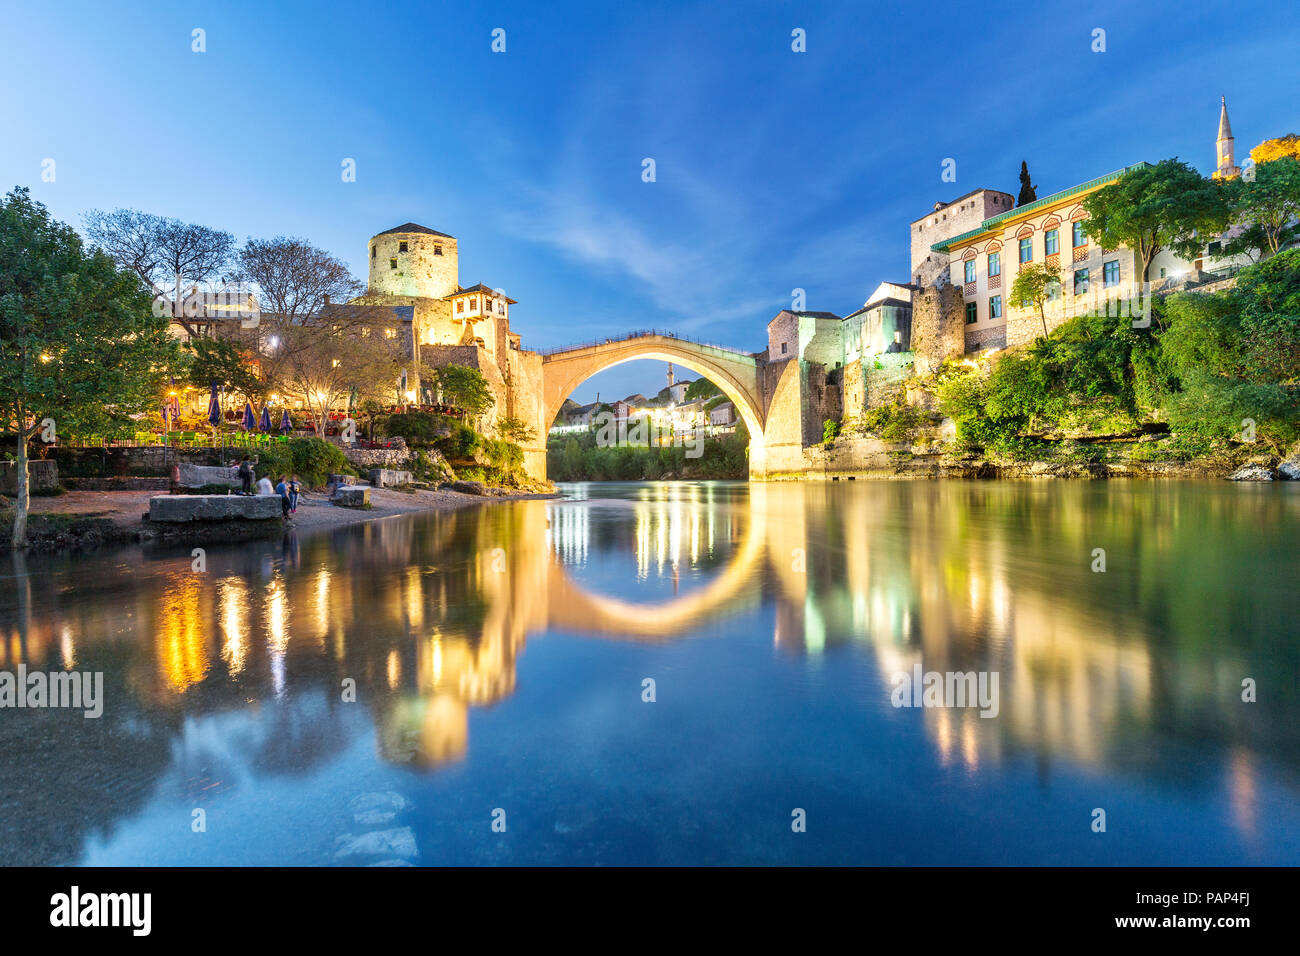 Bosnia and Herzegovina, Mostar, Old town, Old bridge and Neretva river at blue hour - Stock Image